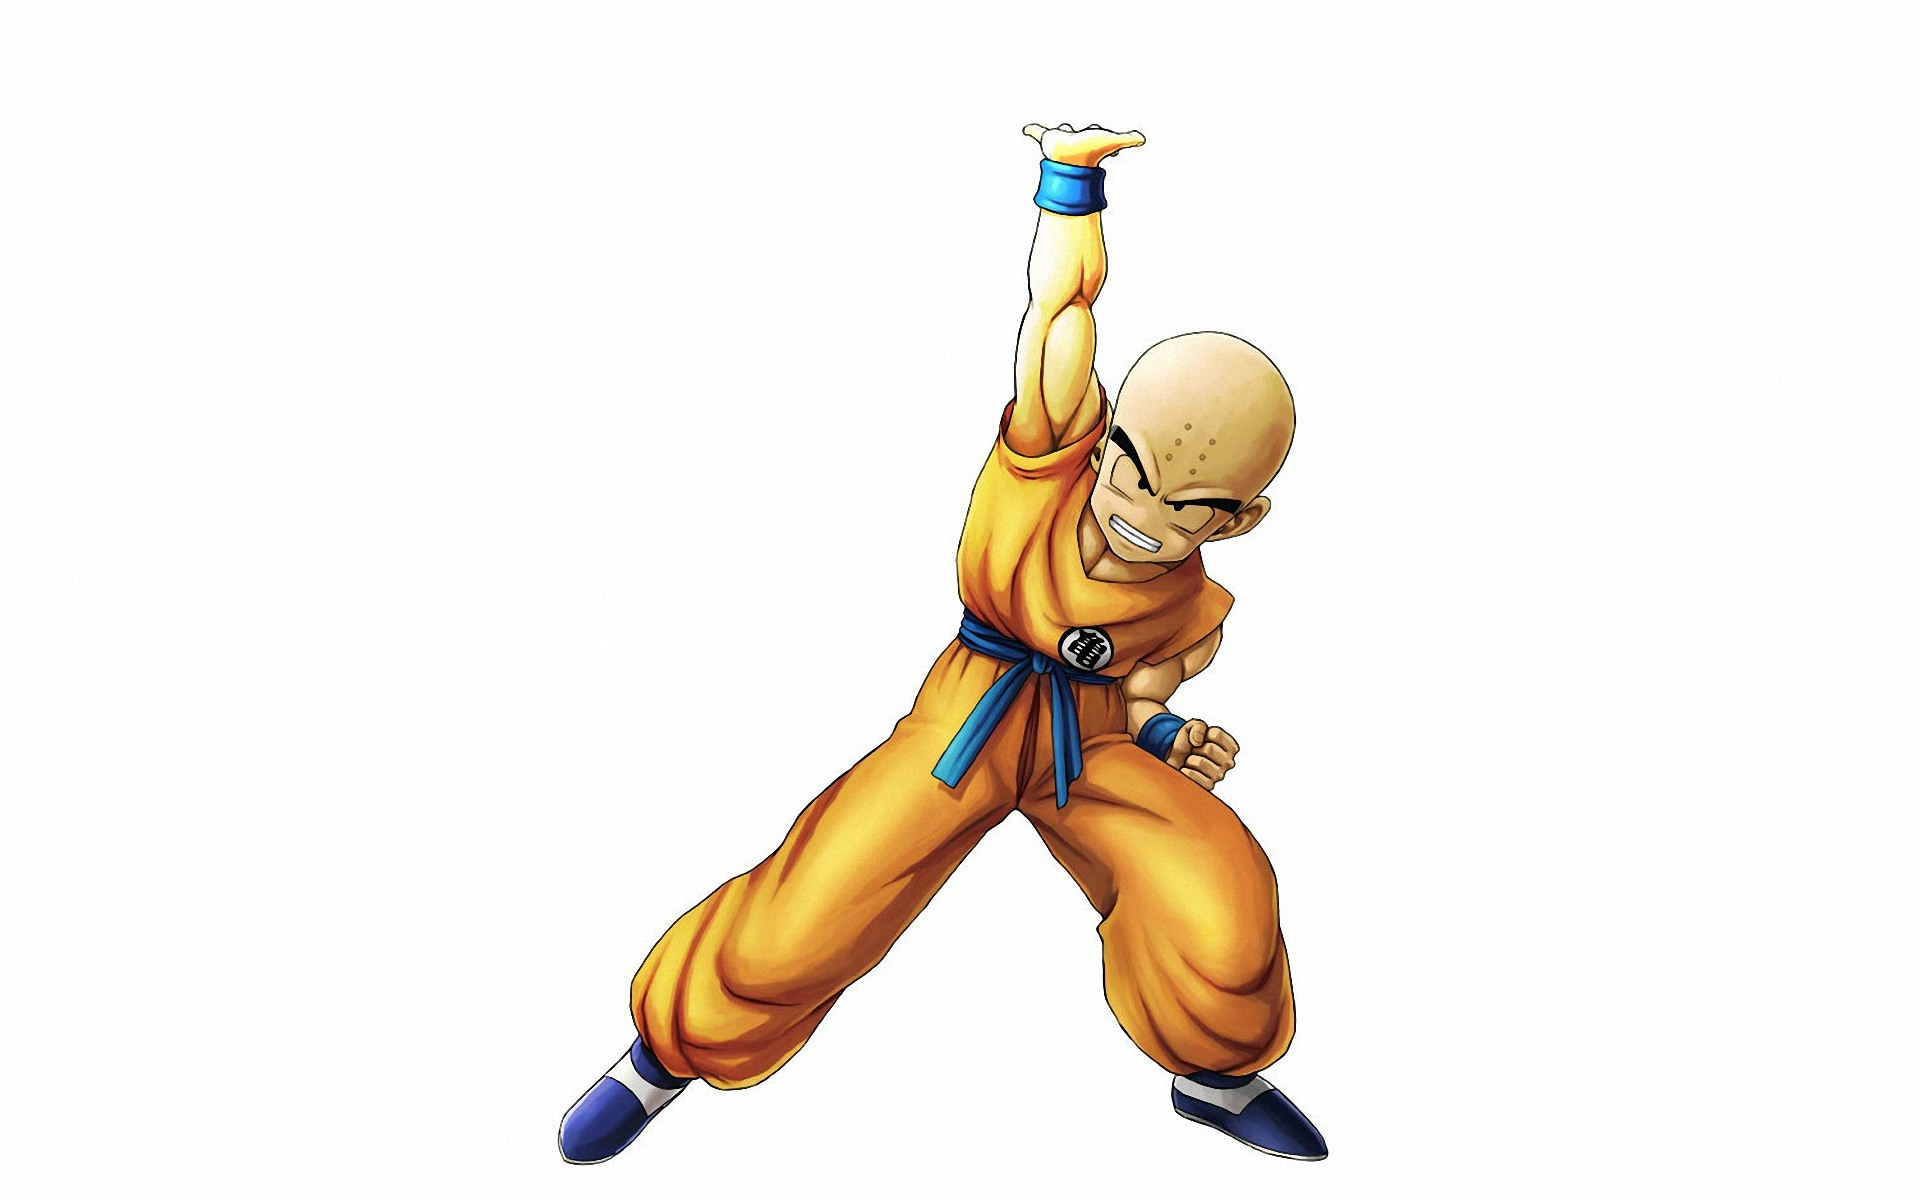 Ultimate Tenkaichi Krillin 1920x1200 Wallpapers 1920x1200 Wallpapers 1920x1200